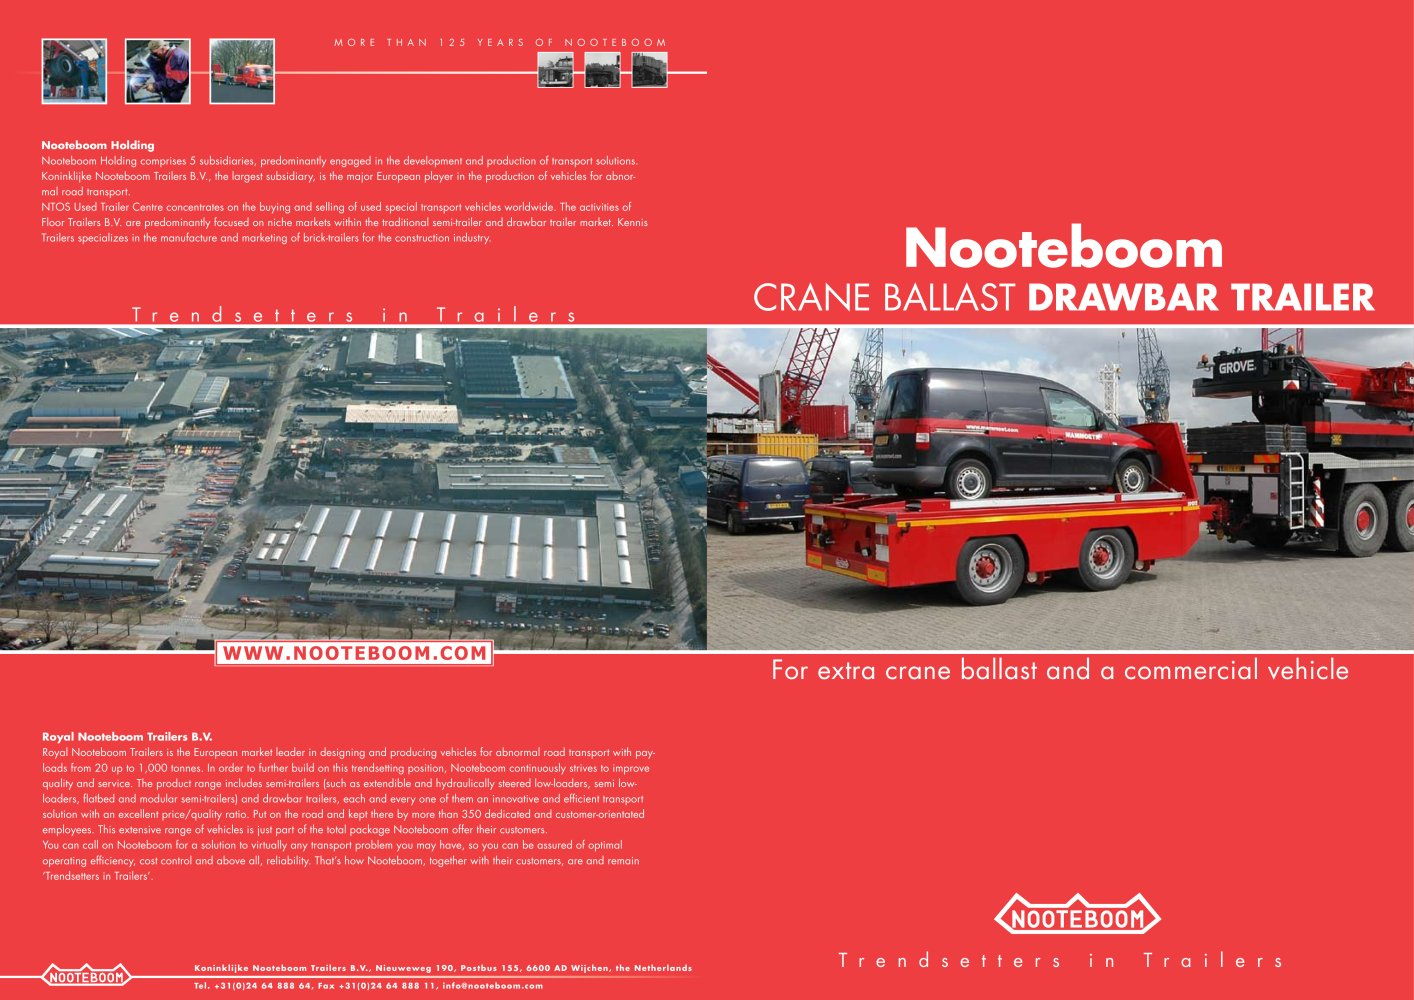 All Nooteboom Catalogs And Technical Brochures - Nooteboom Trailer Wiring Diagram